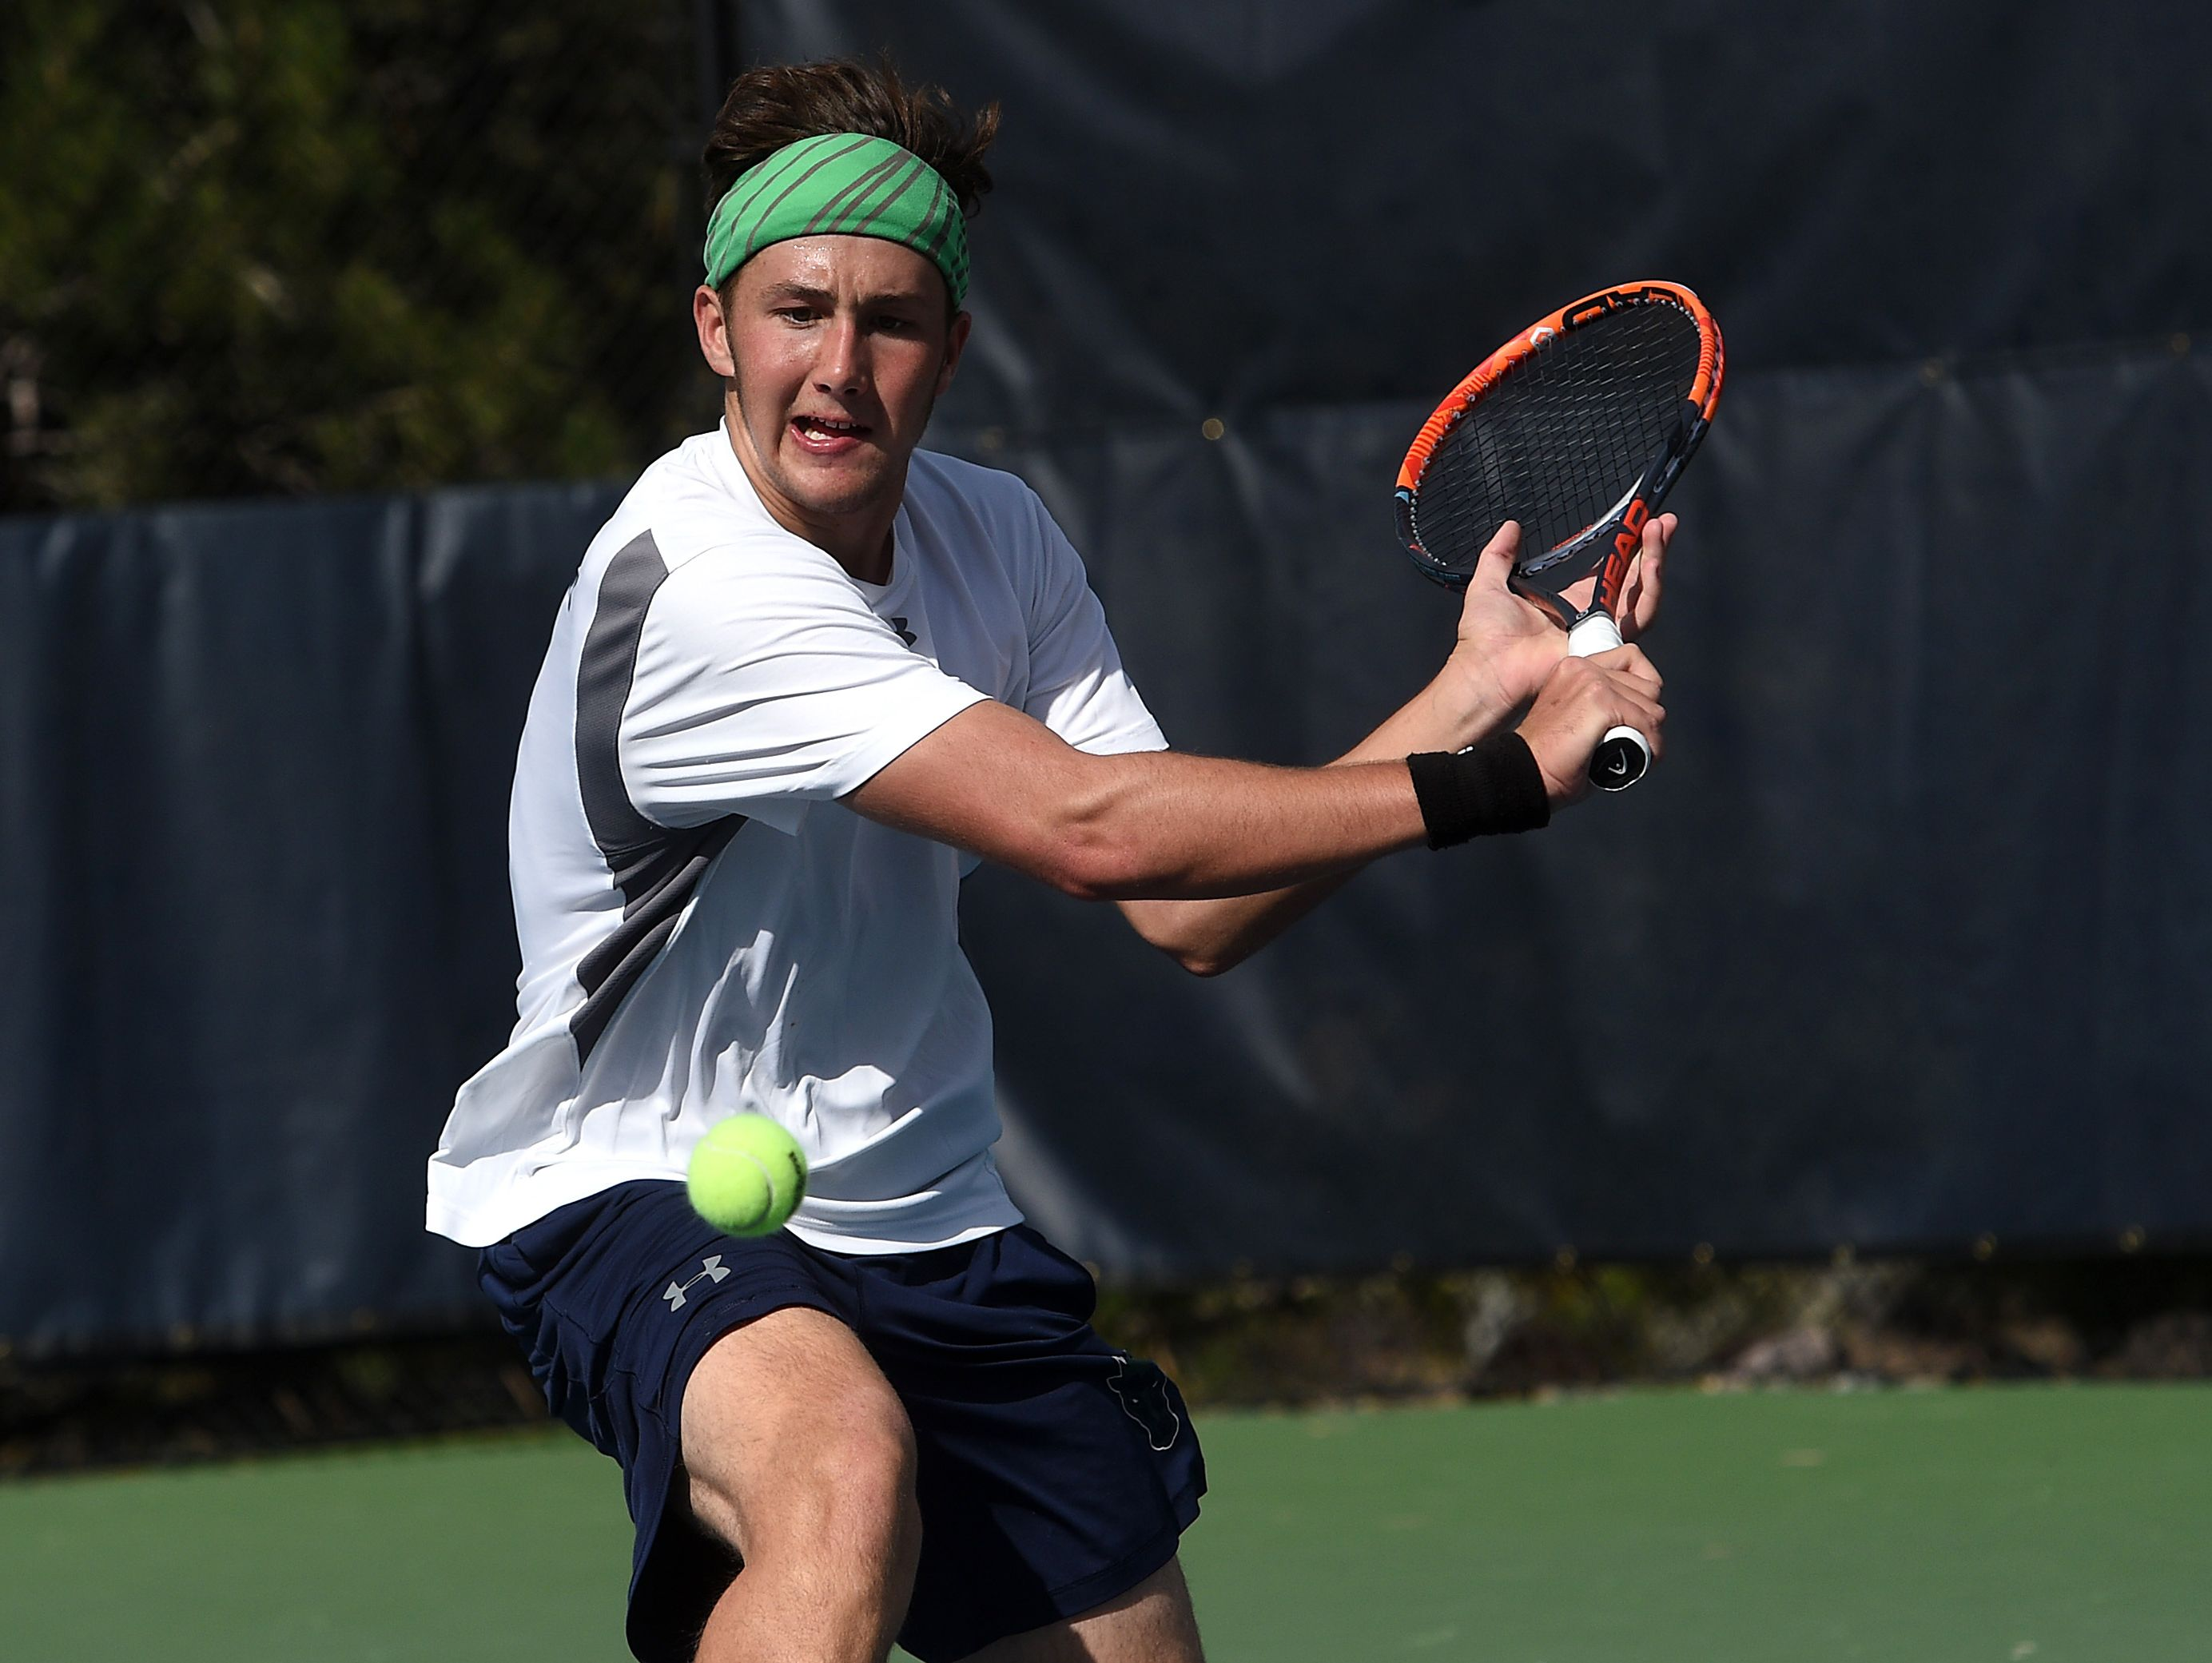 Damonte Ranch's Tim Zagar competes during the NIAA Class 4A Nevada State High School Tennis Championships at the Caughlin Athletic Club in Reno on Oct. 22, 2016.